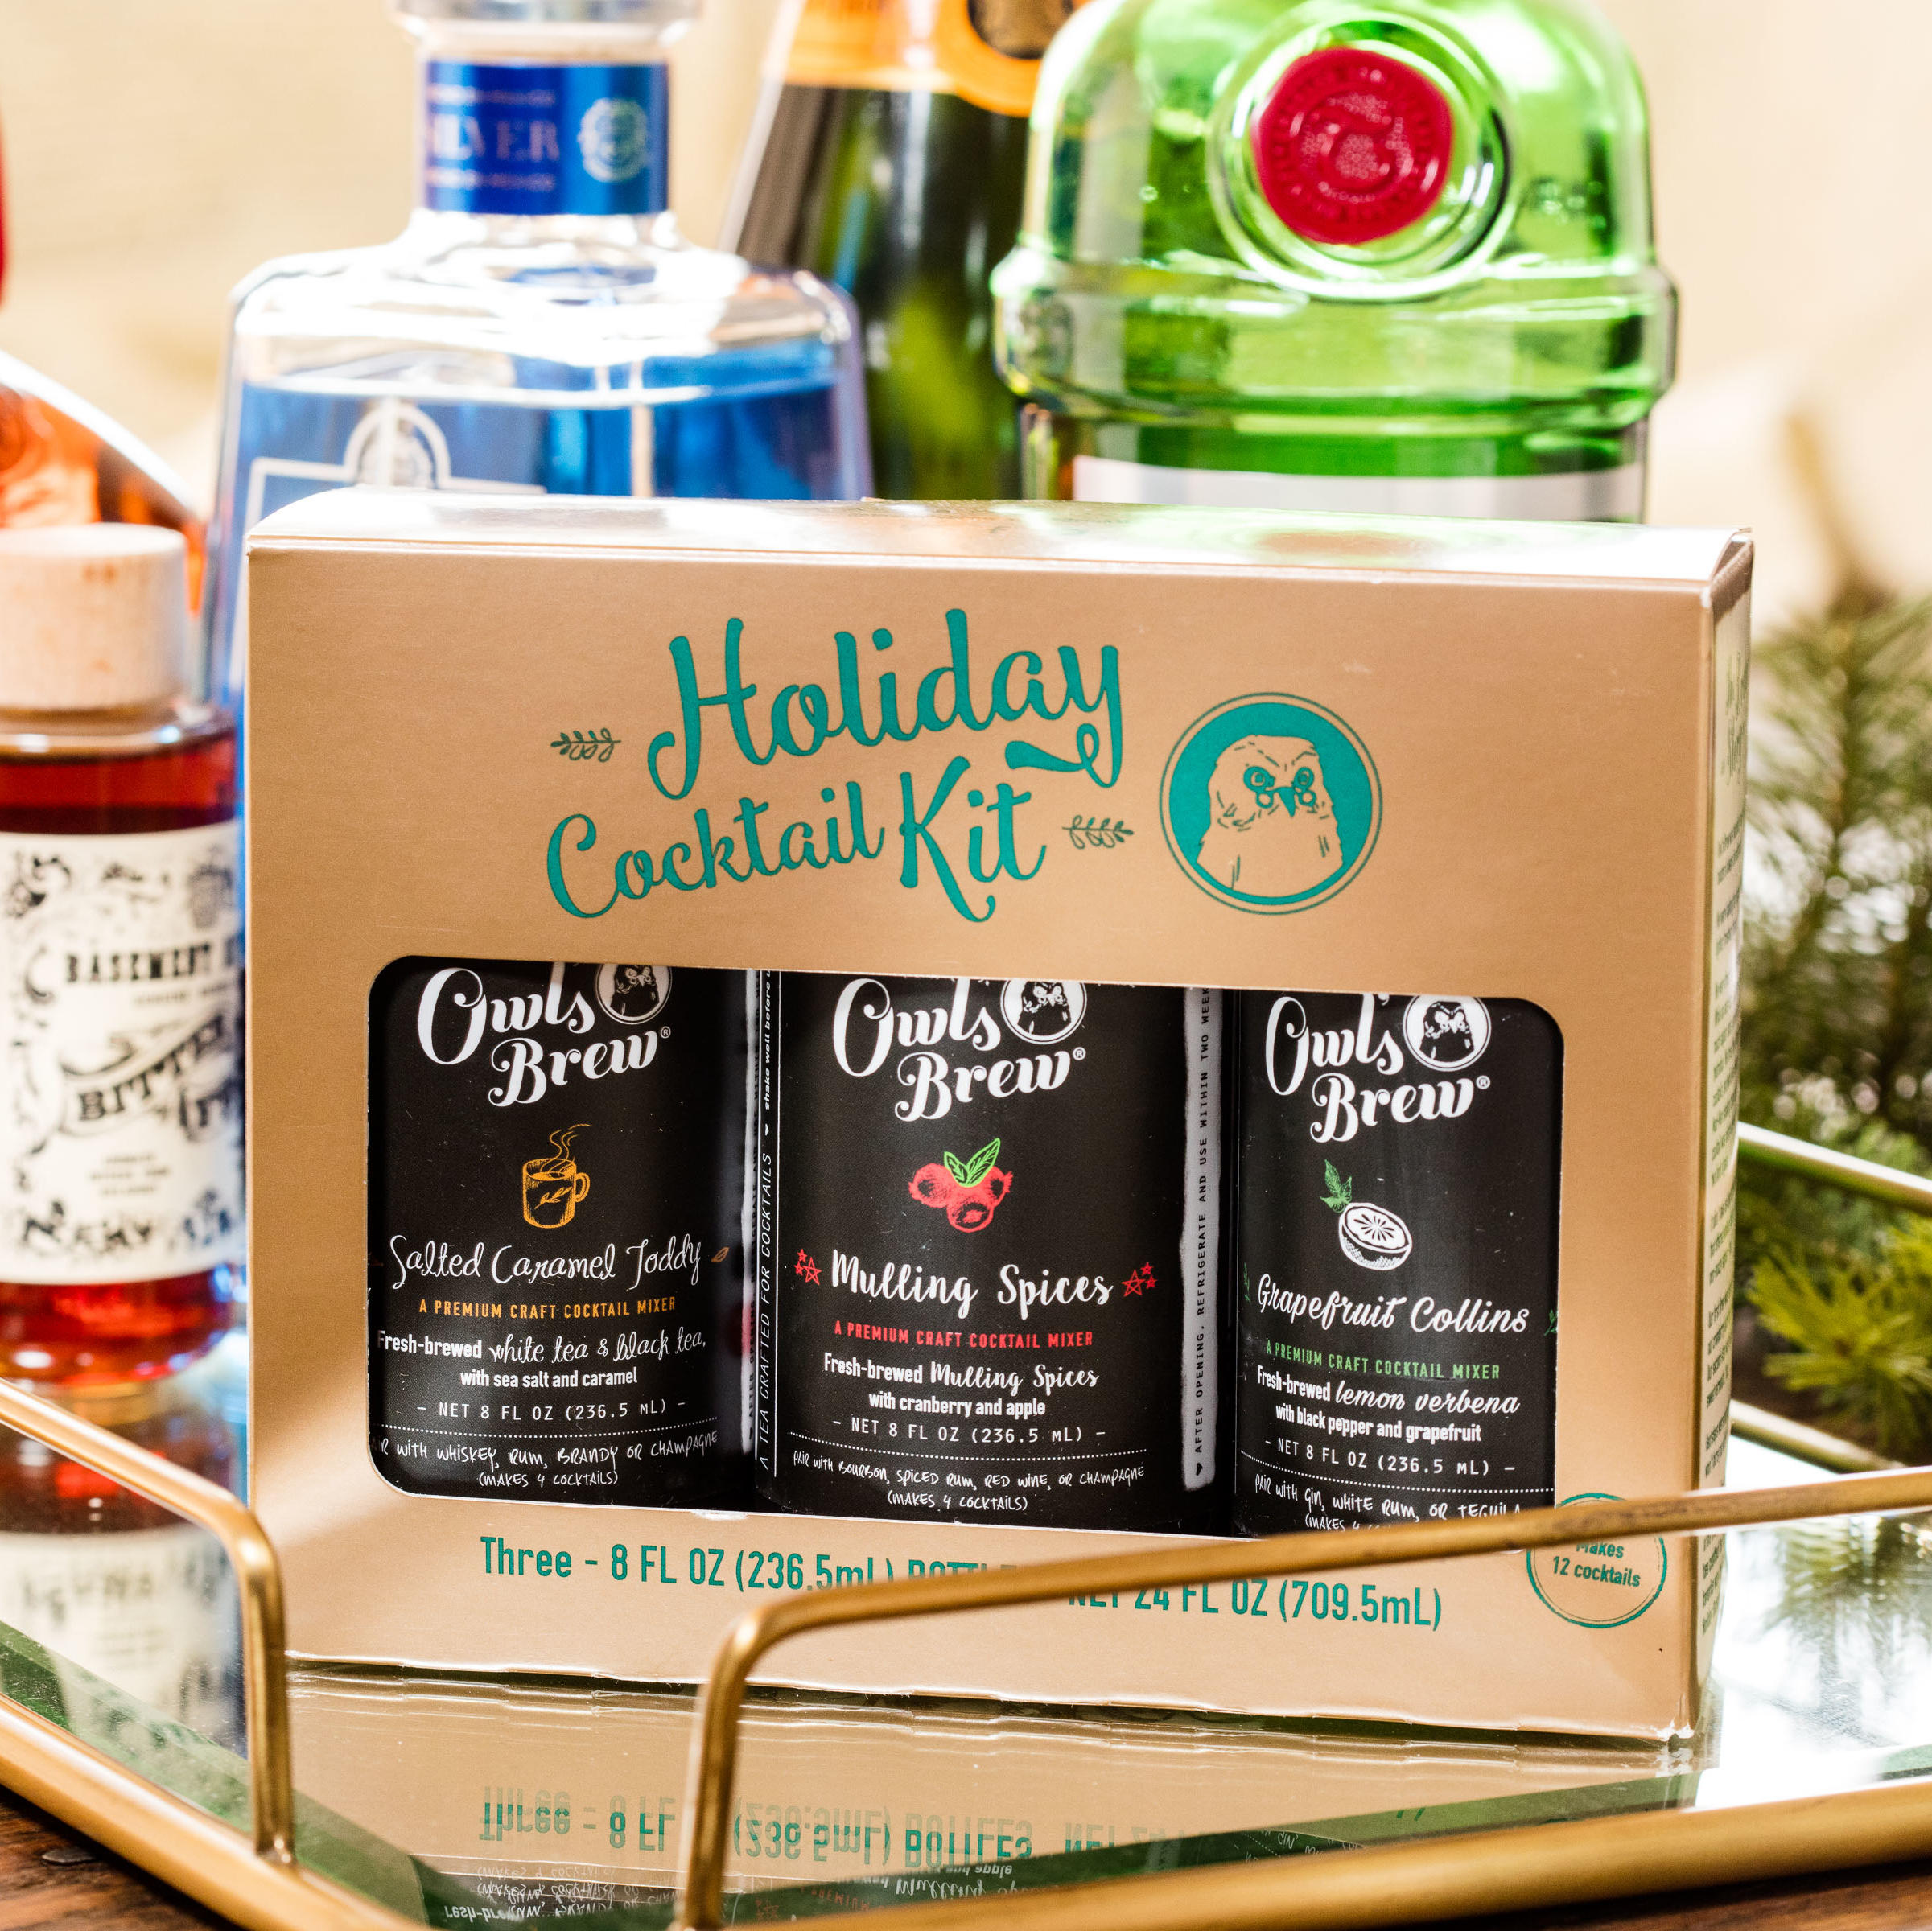 Owl's Brew Holiday Cocktail Mixer Kit